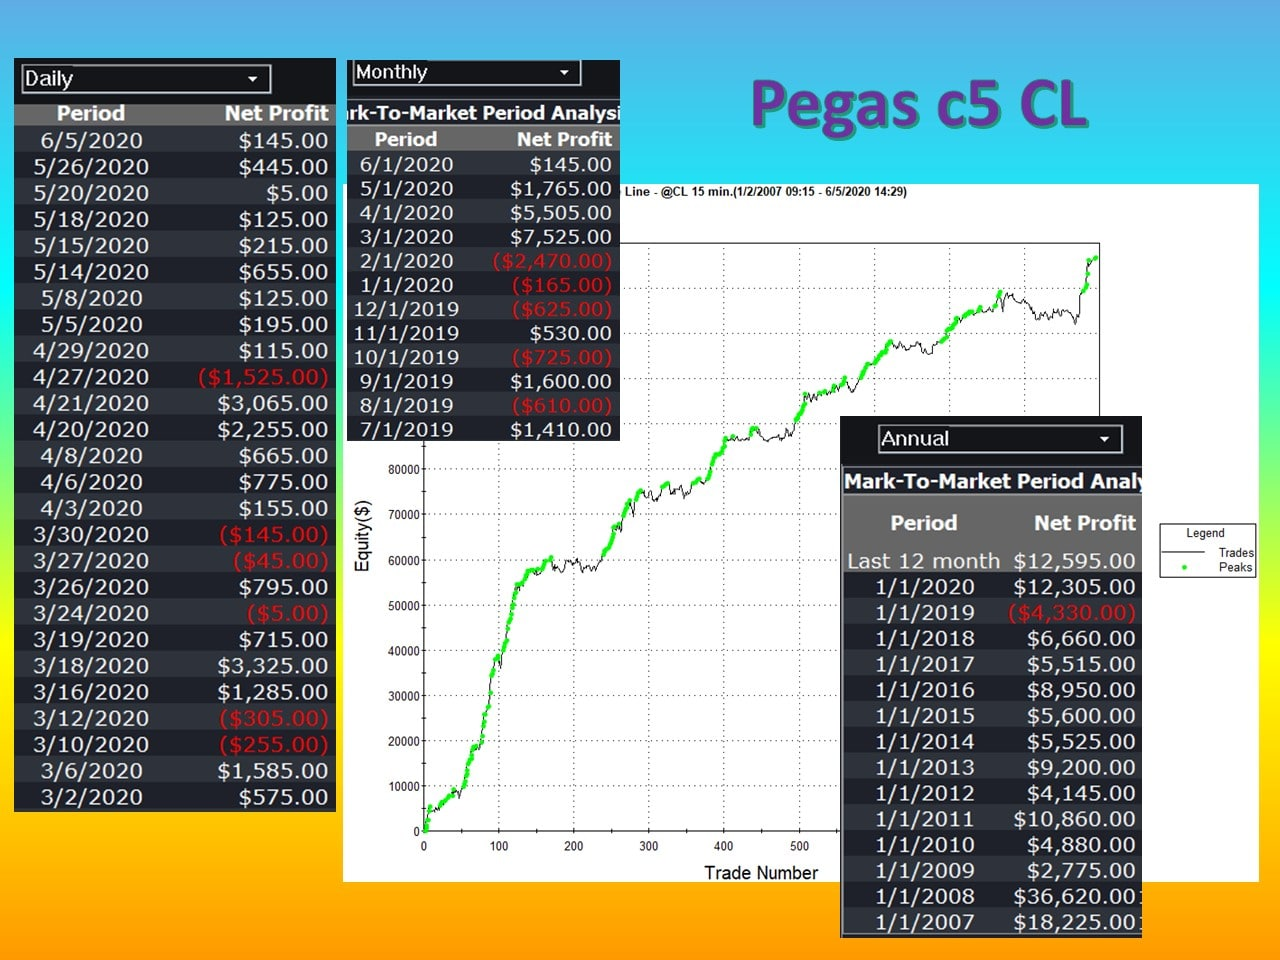 Pegas CL Fully Automated Profits